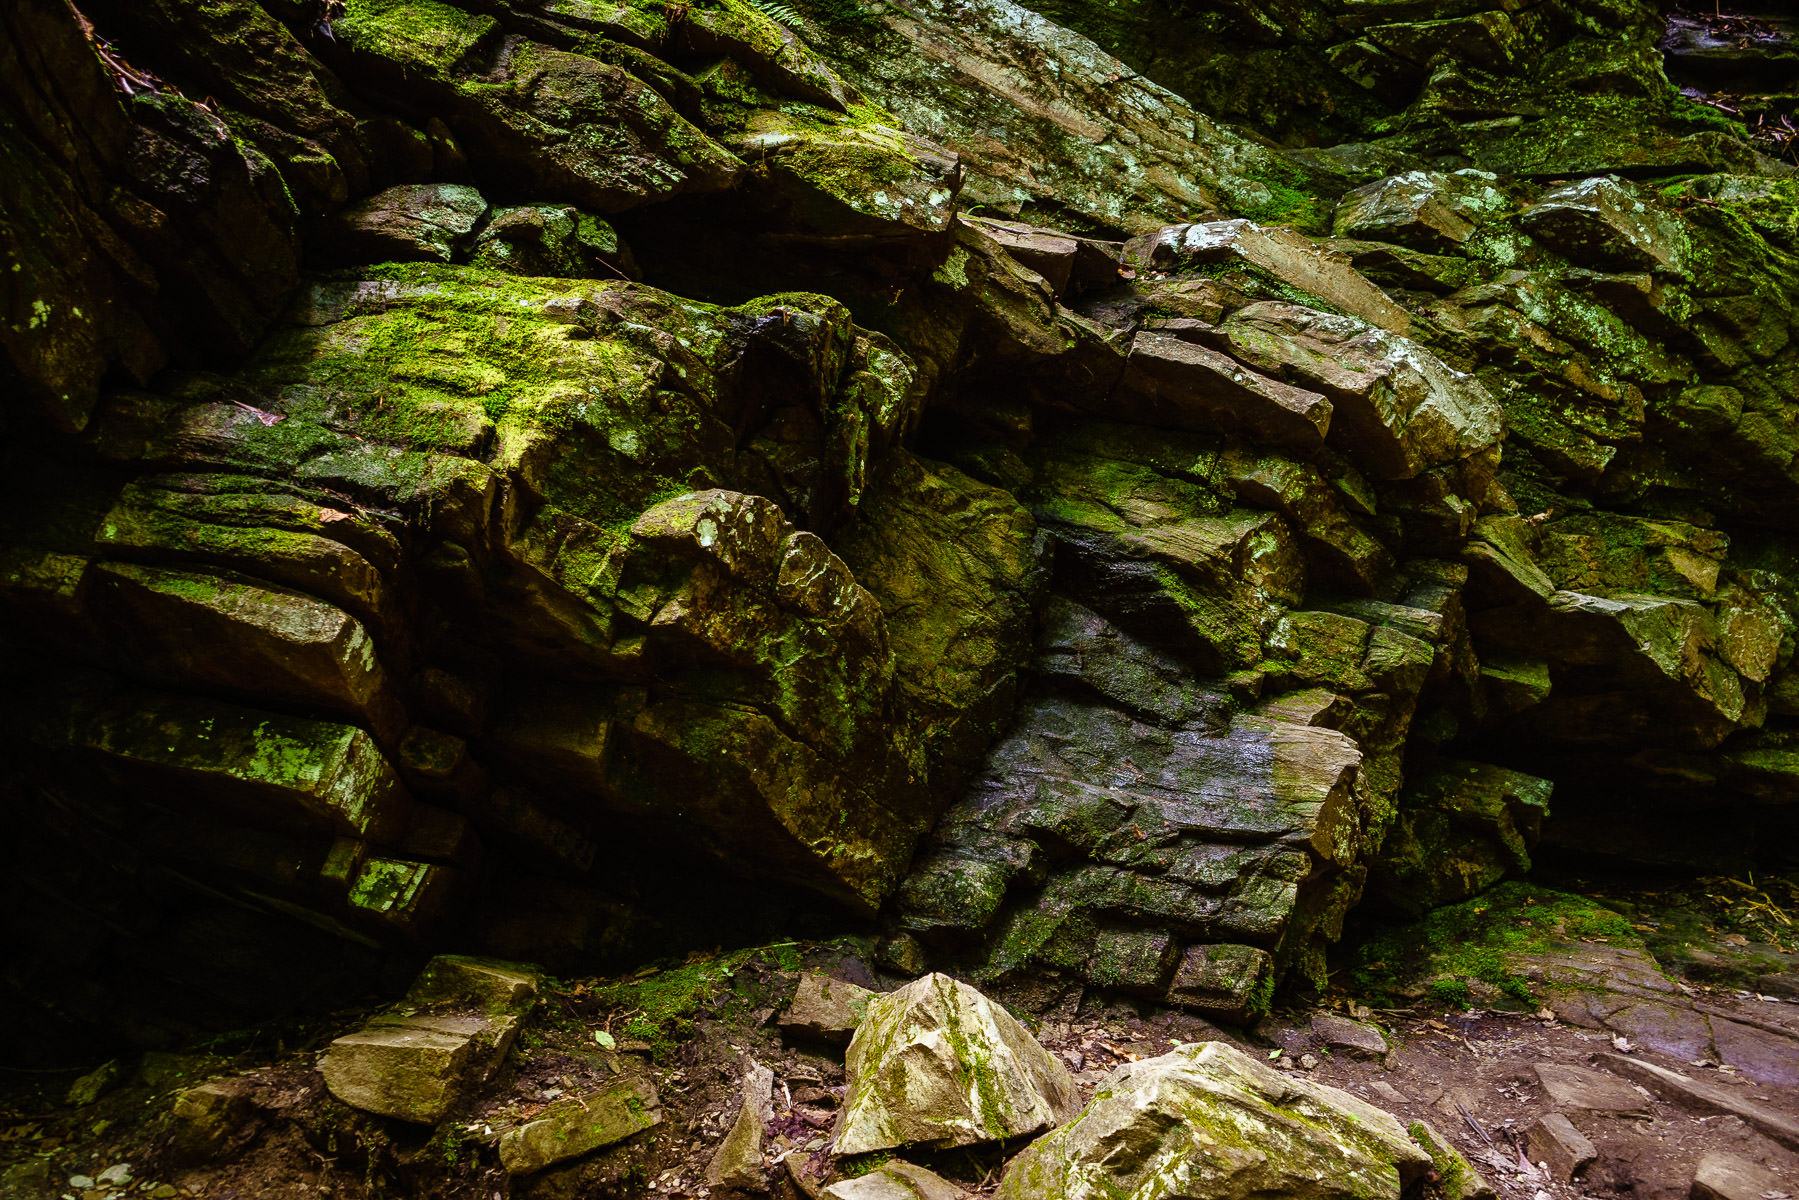 Moss-covered rocks found in the forest near Cherokee, North Carolina.